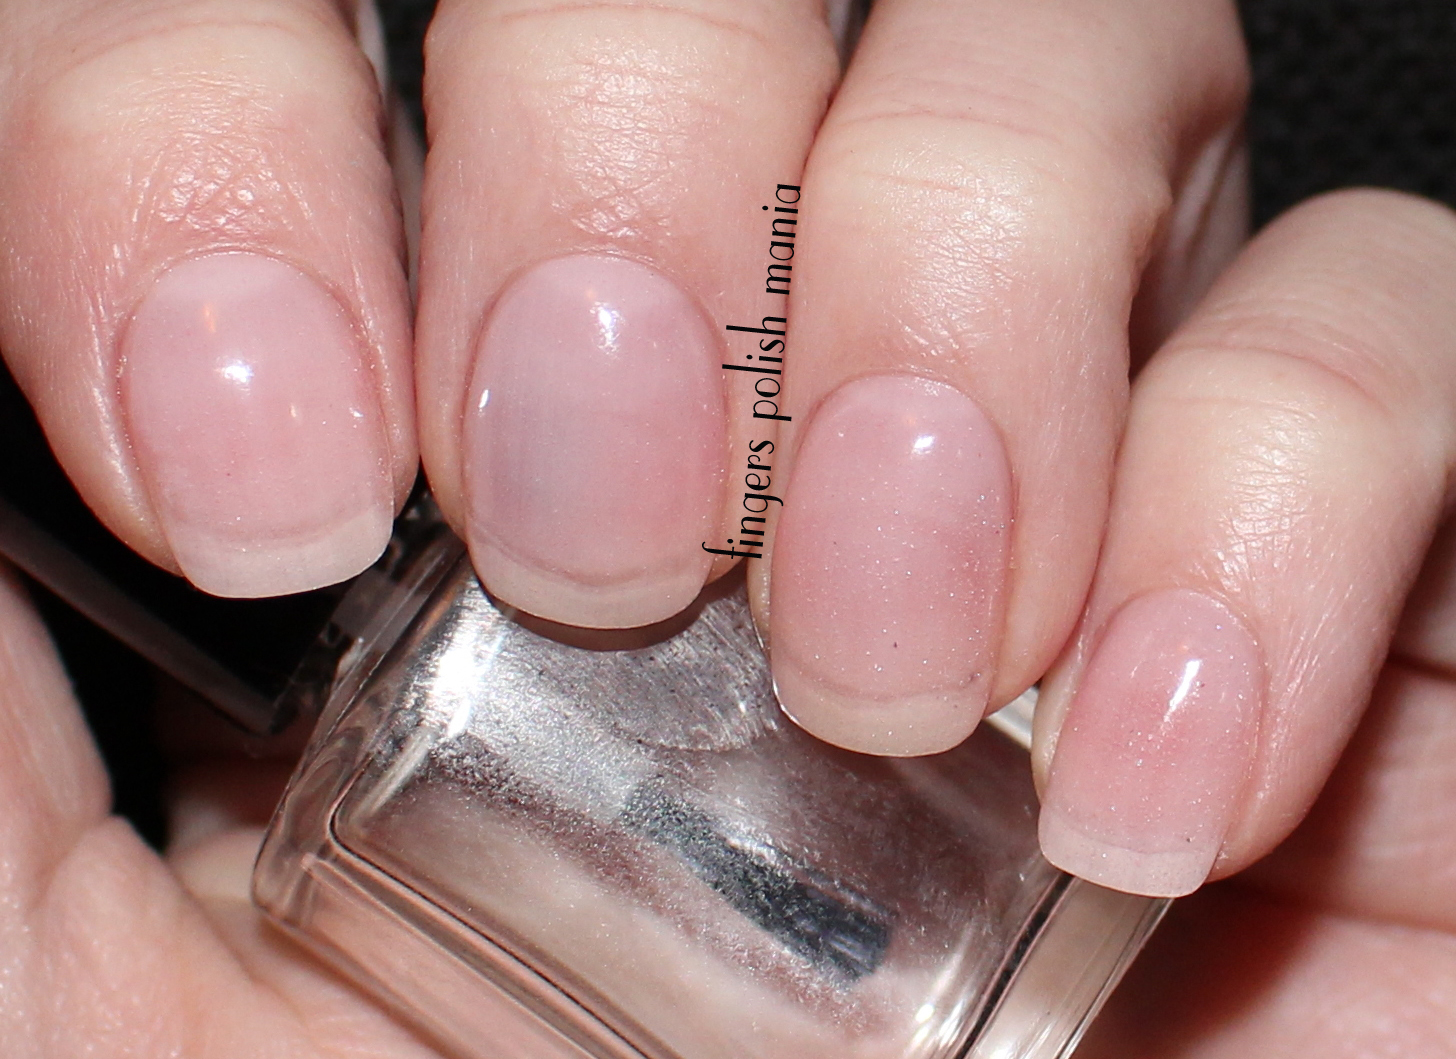 fingers polish mania: NexGen Update Session